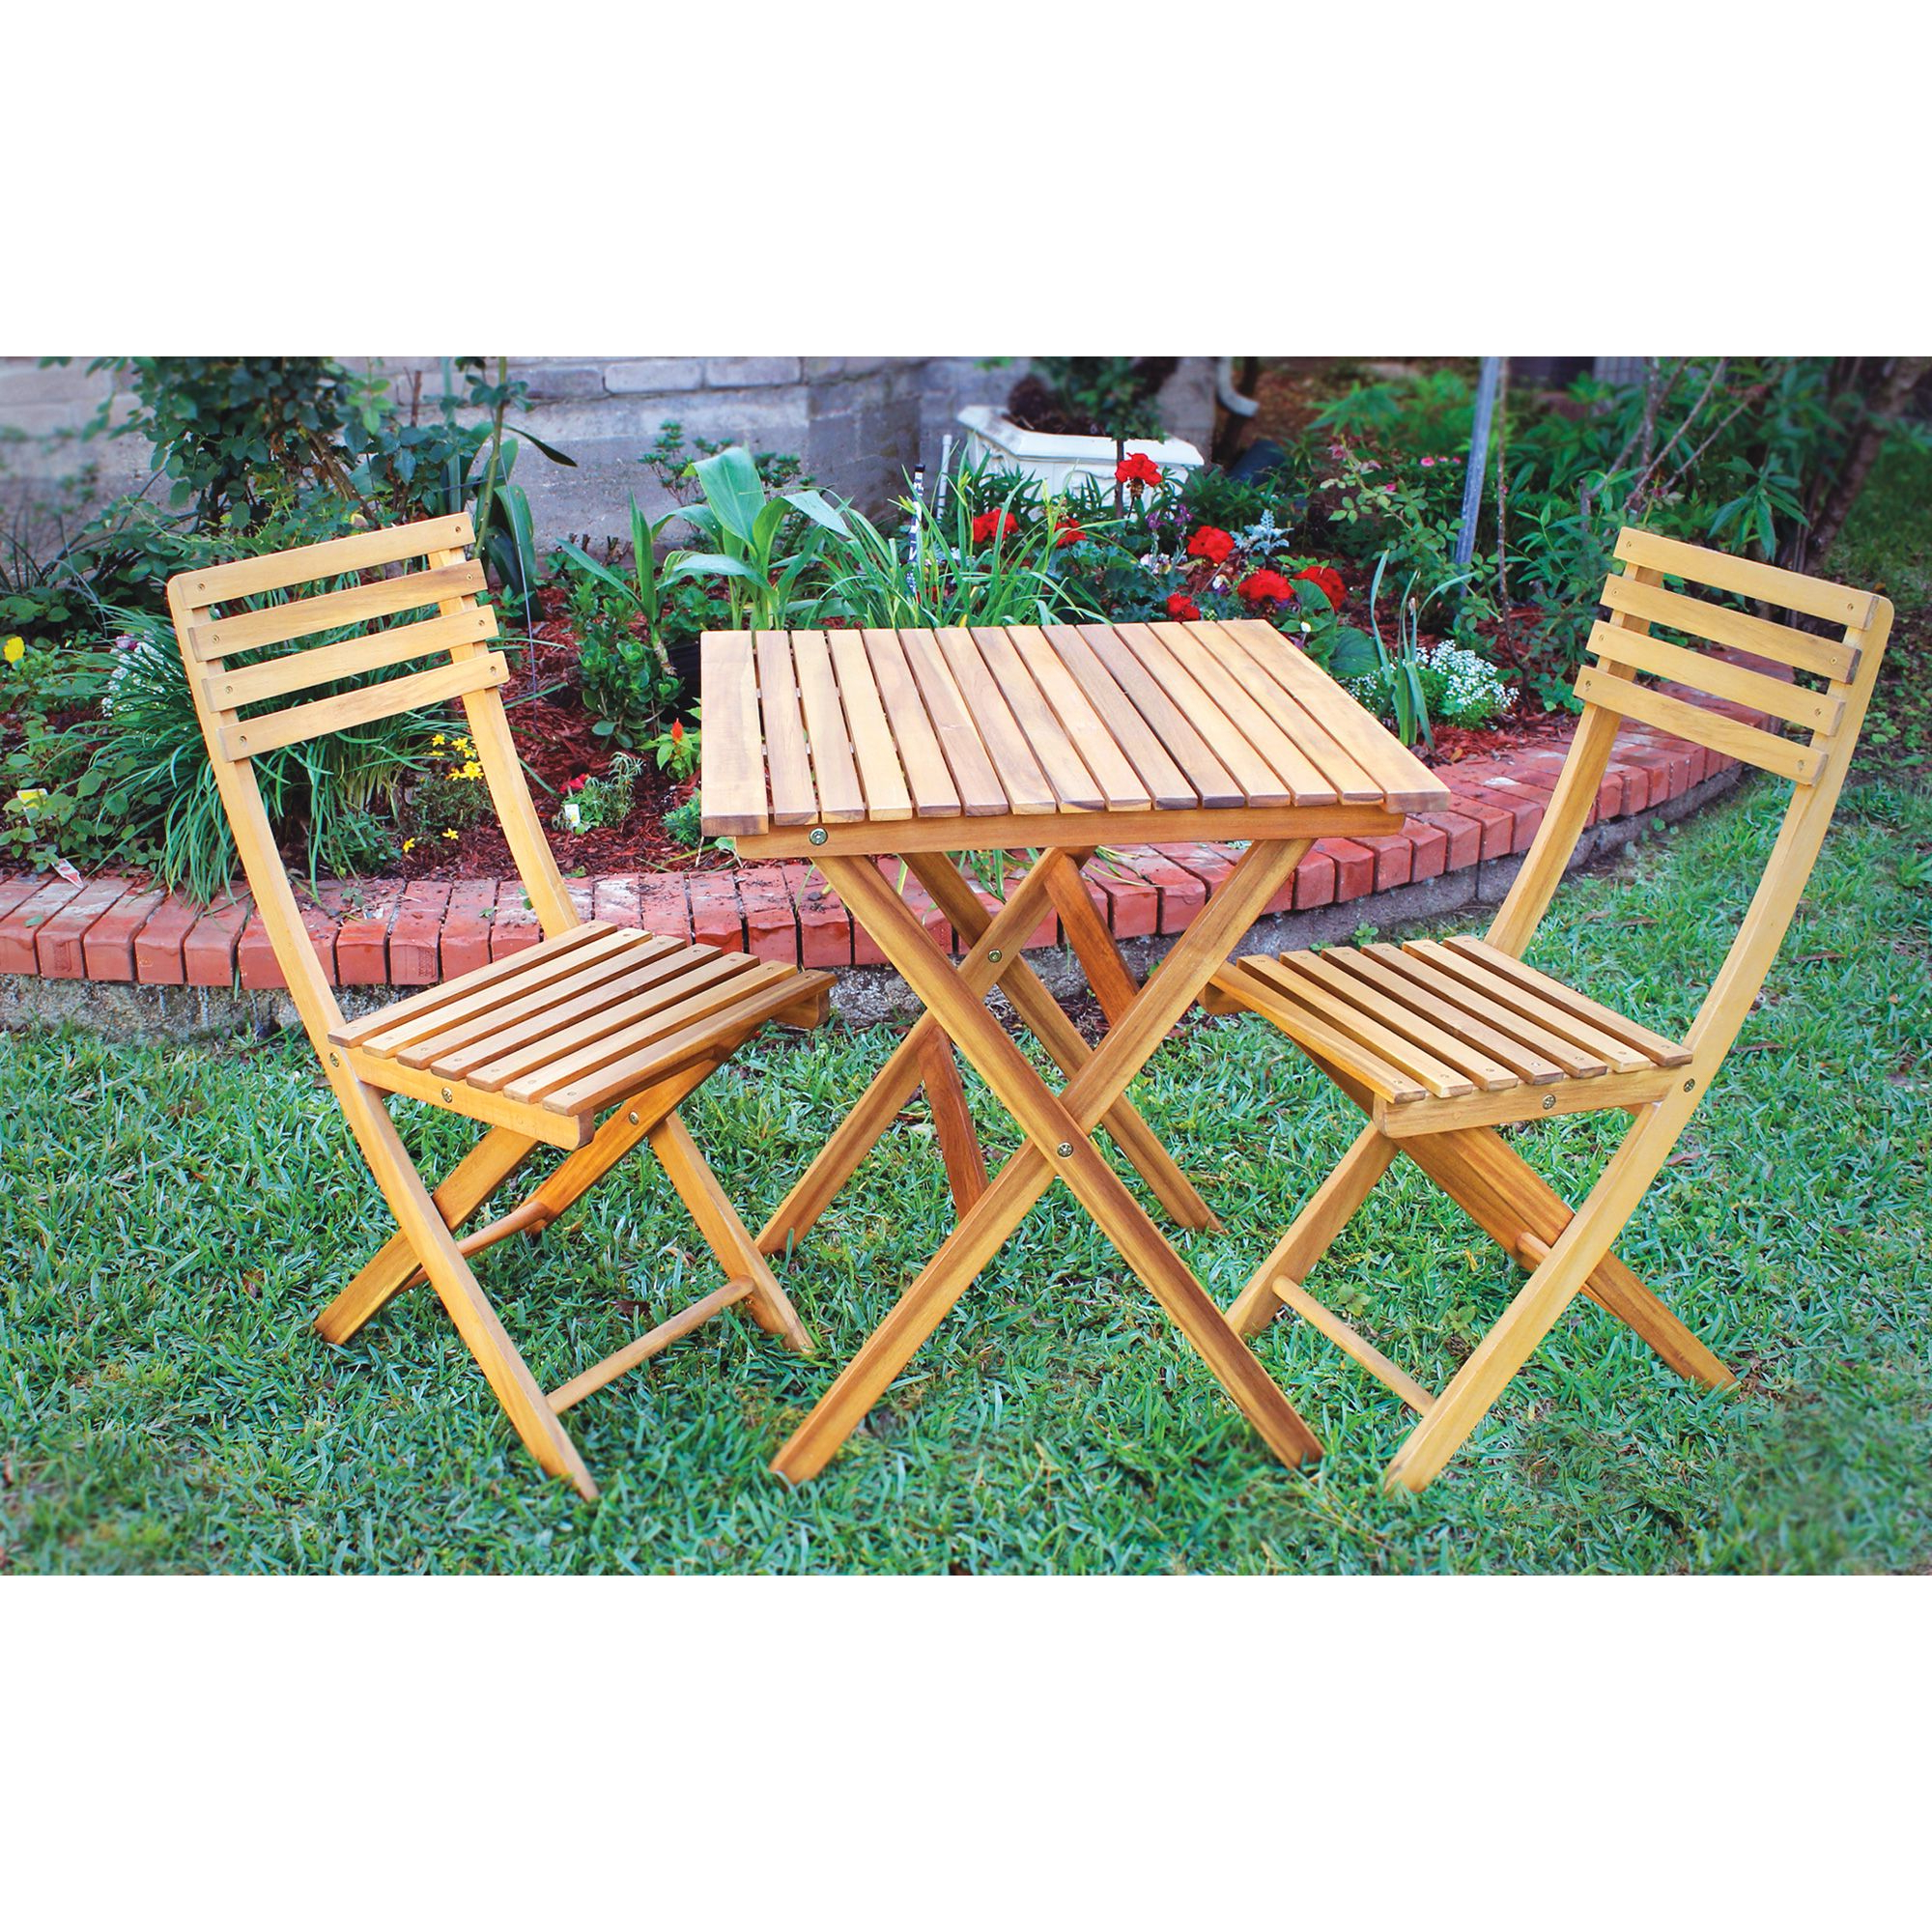 Widely Used Leora Wooden Garden Bench (View 24 of 30)